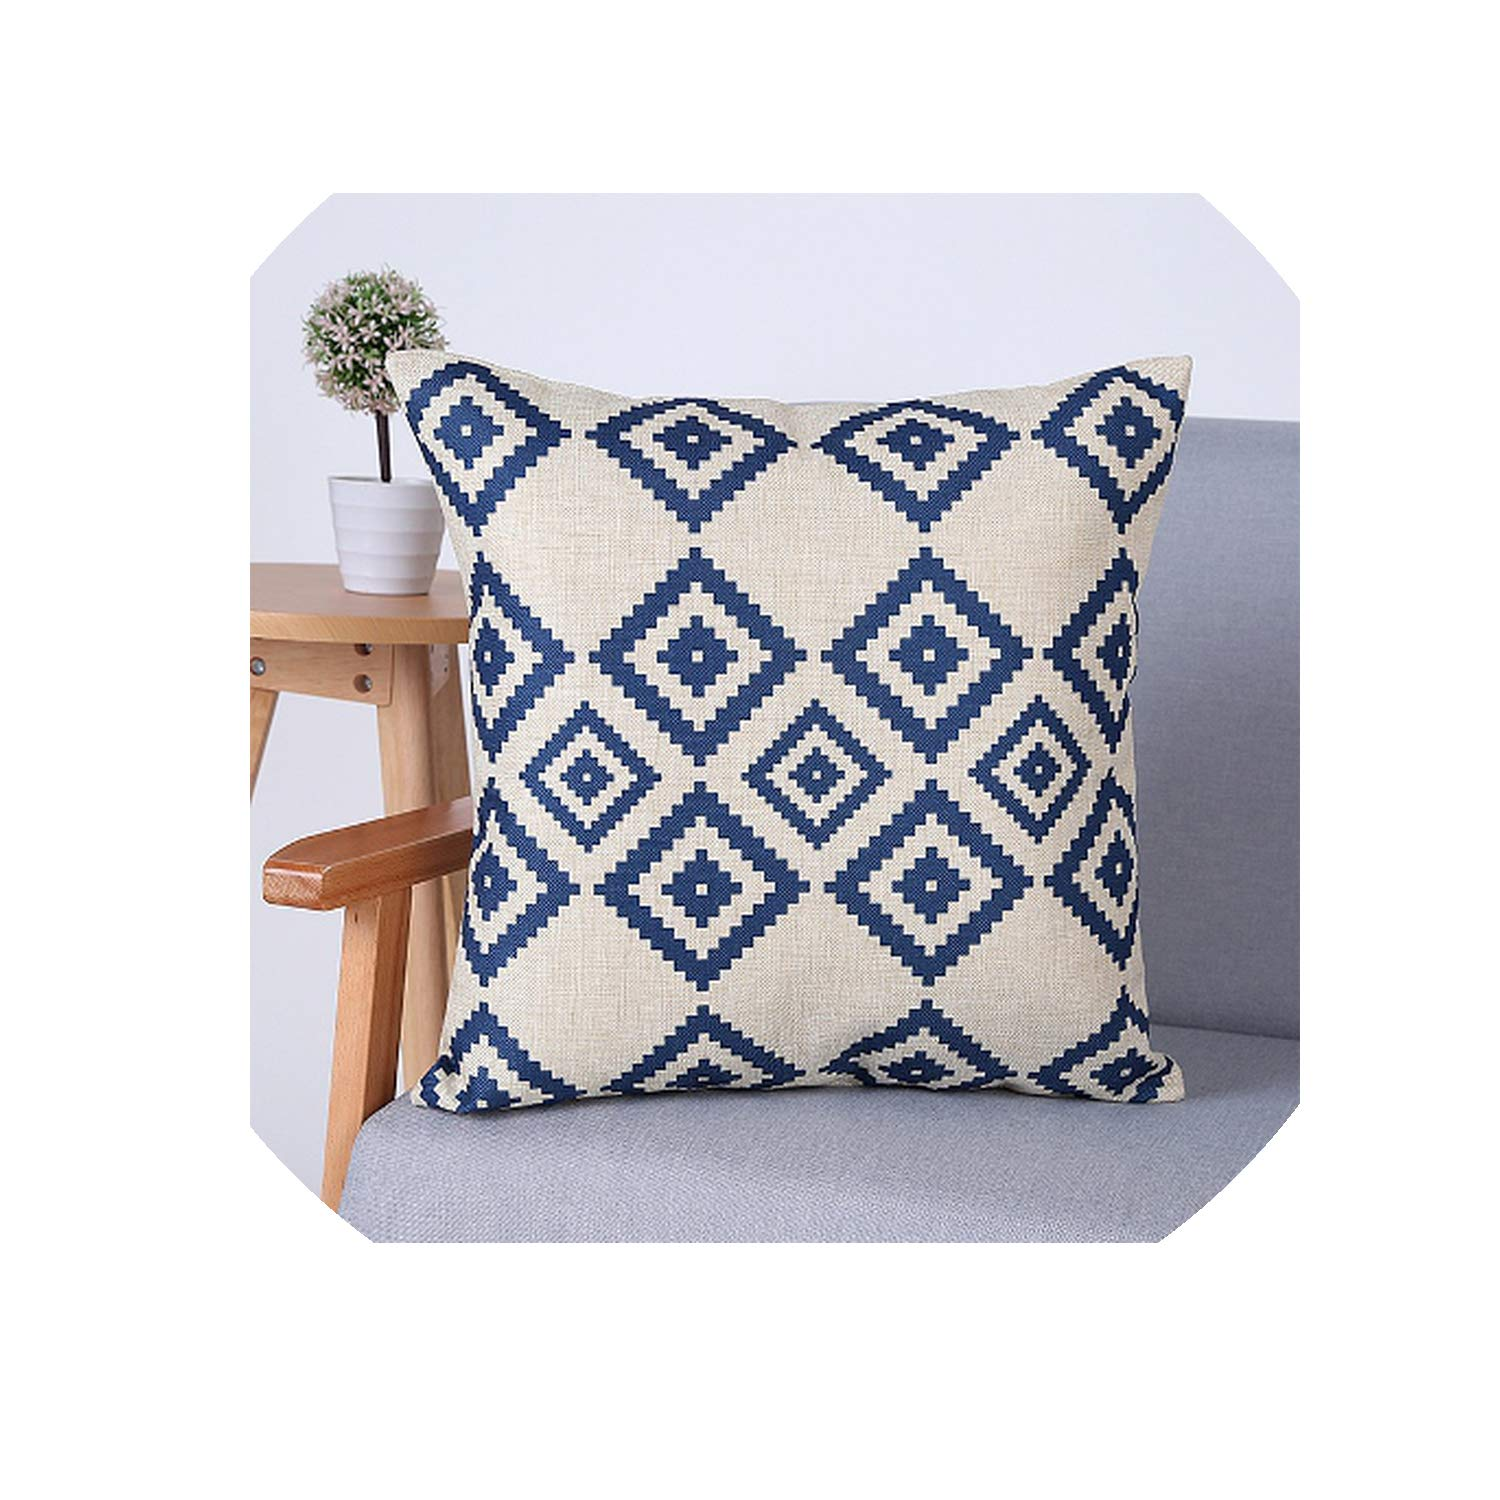 Amazon.com: Geometric Cushion Cover Decorative Throw Pillows ...